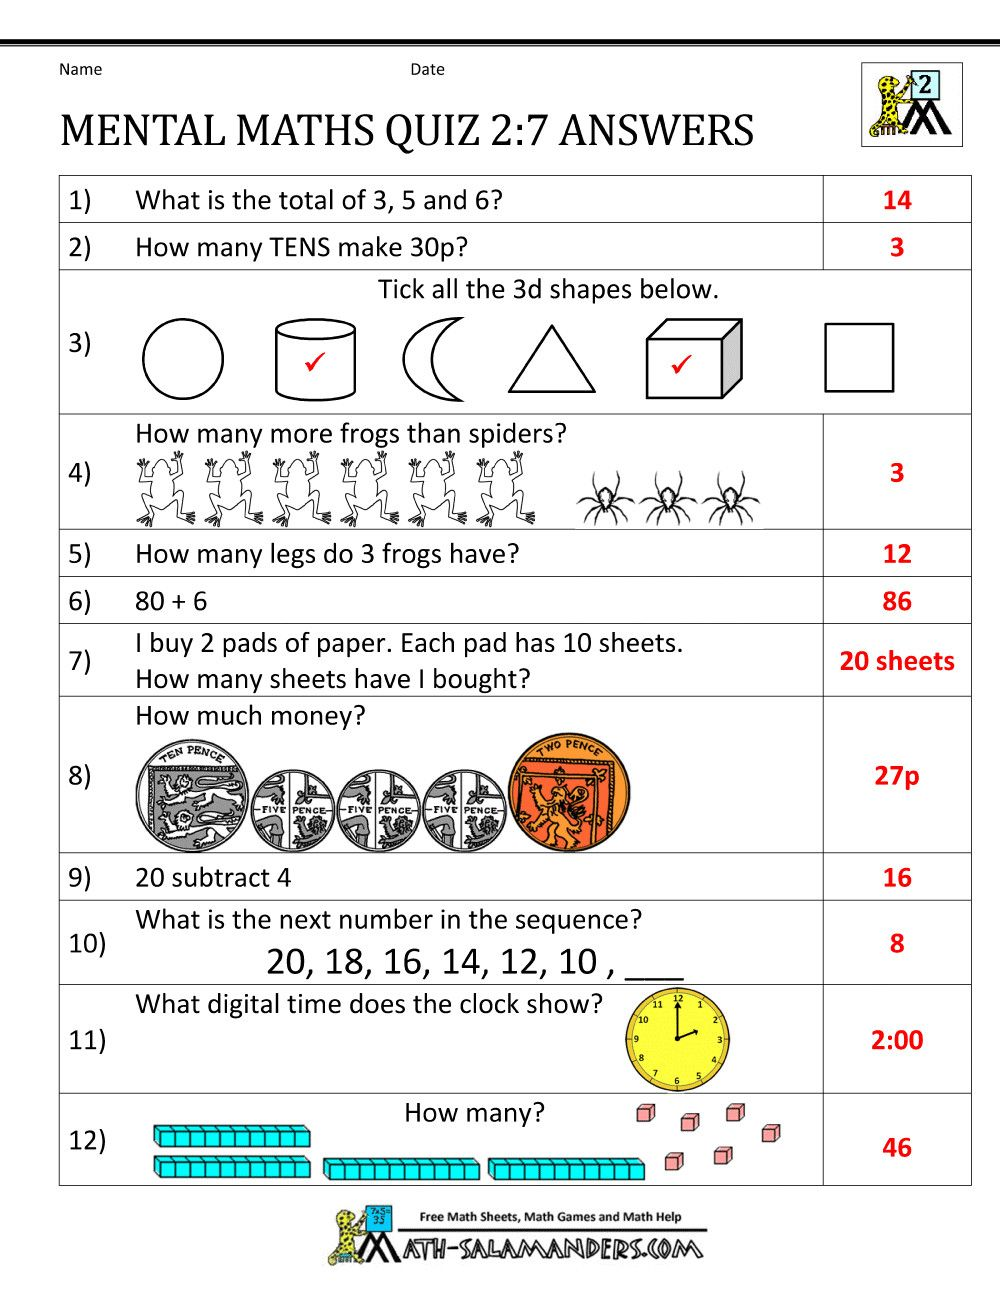 medium resolution of 9 Mental Maths Worksheets for Class 1 - Free Templates